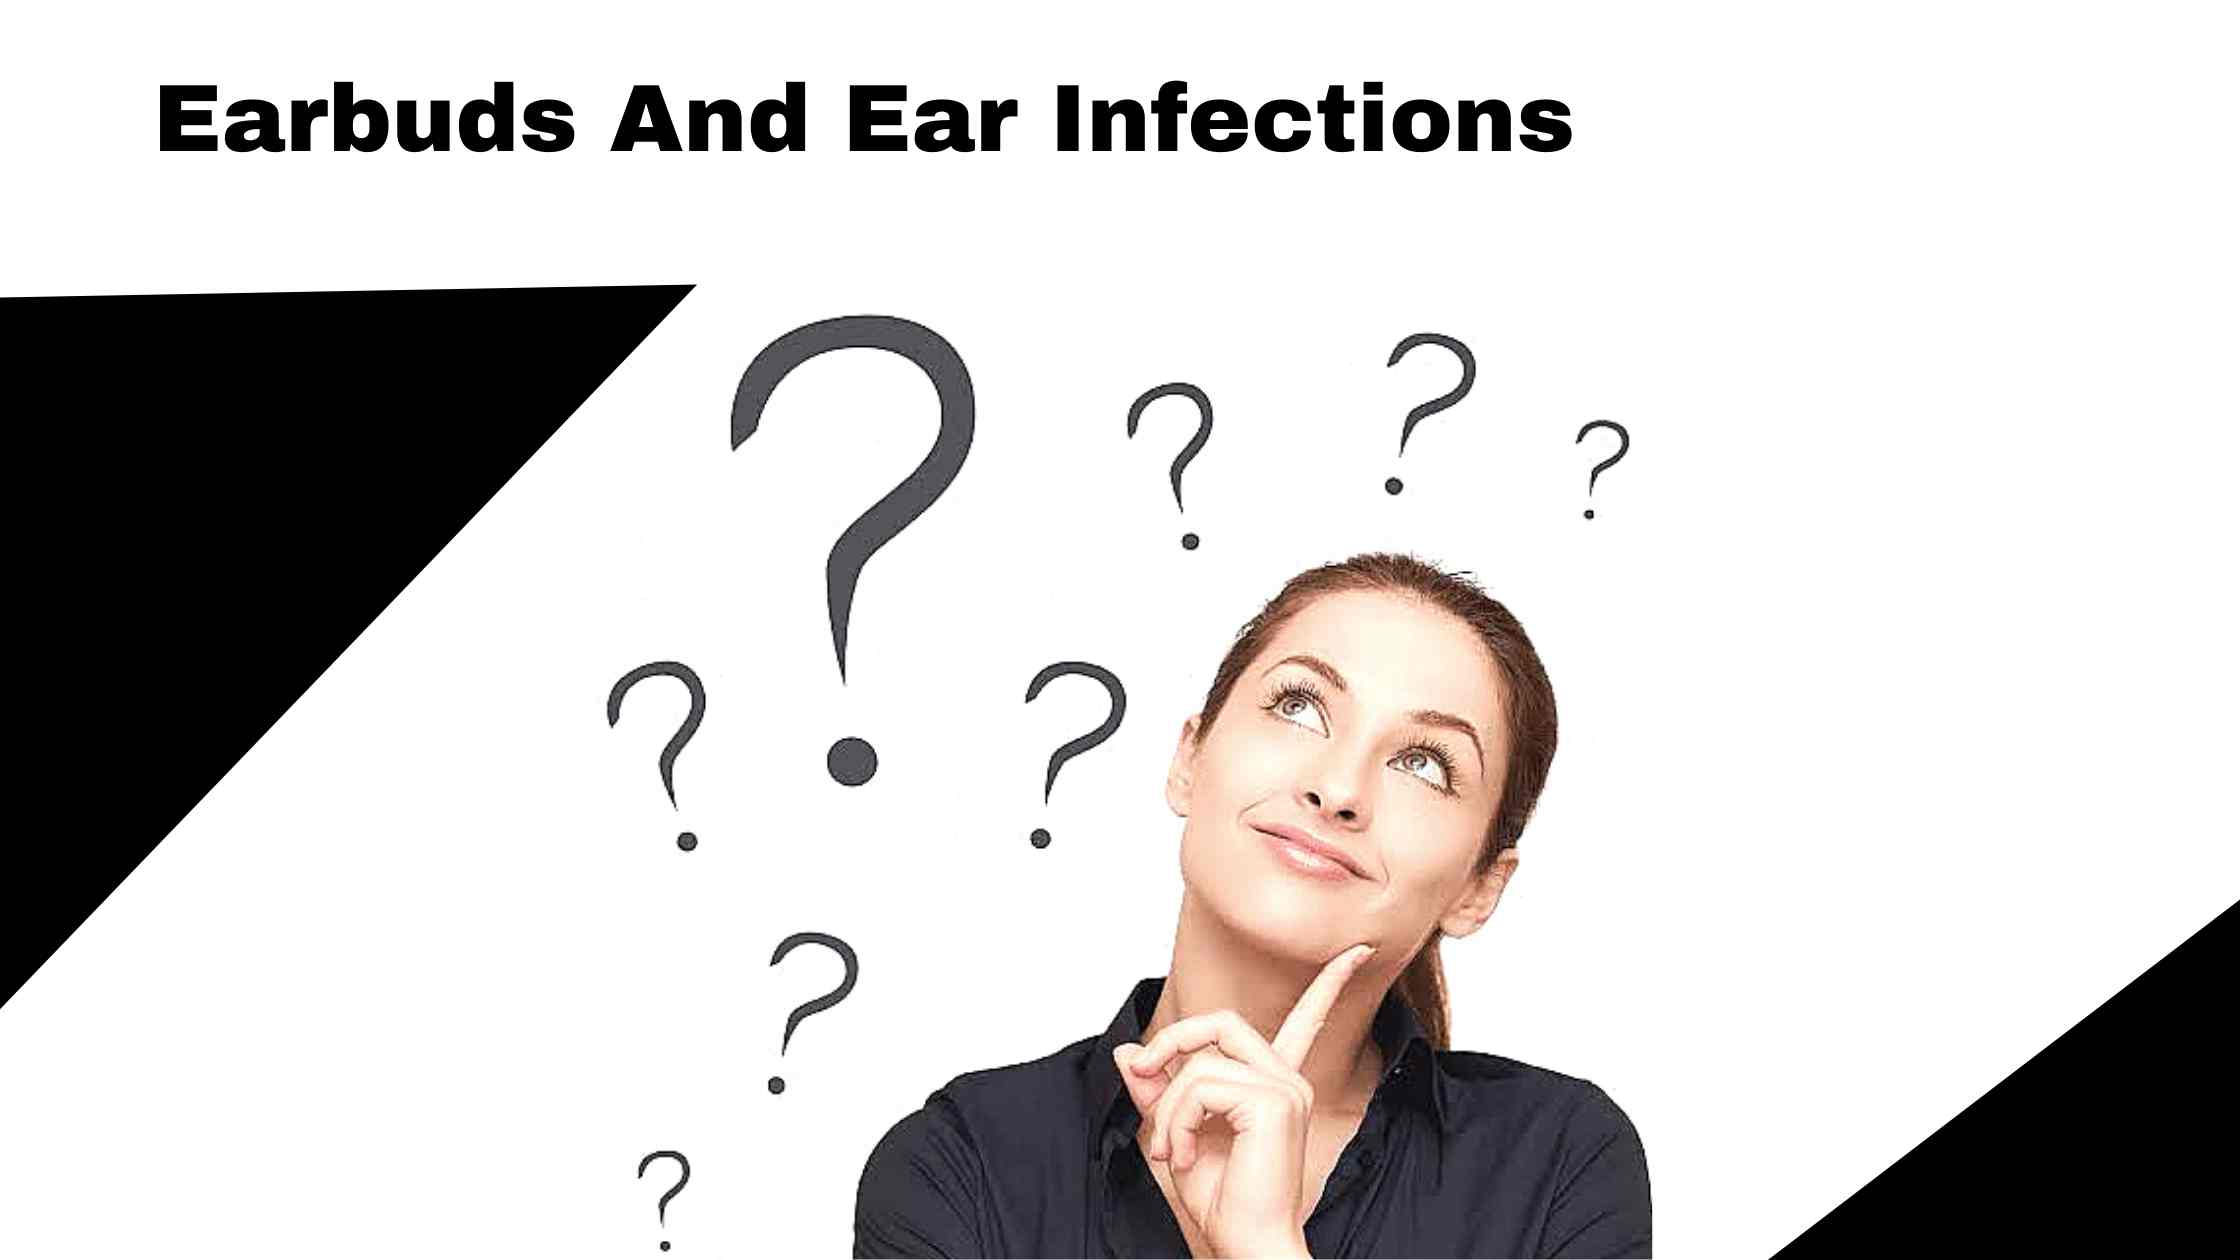 earbuds-and-ear-infections